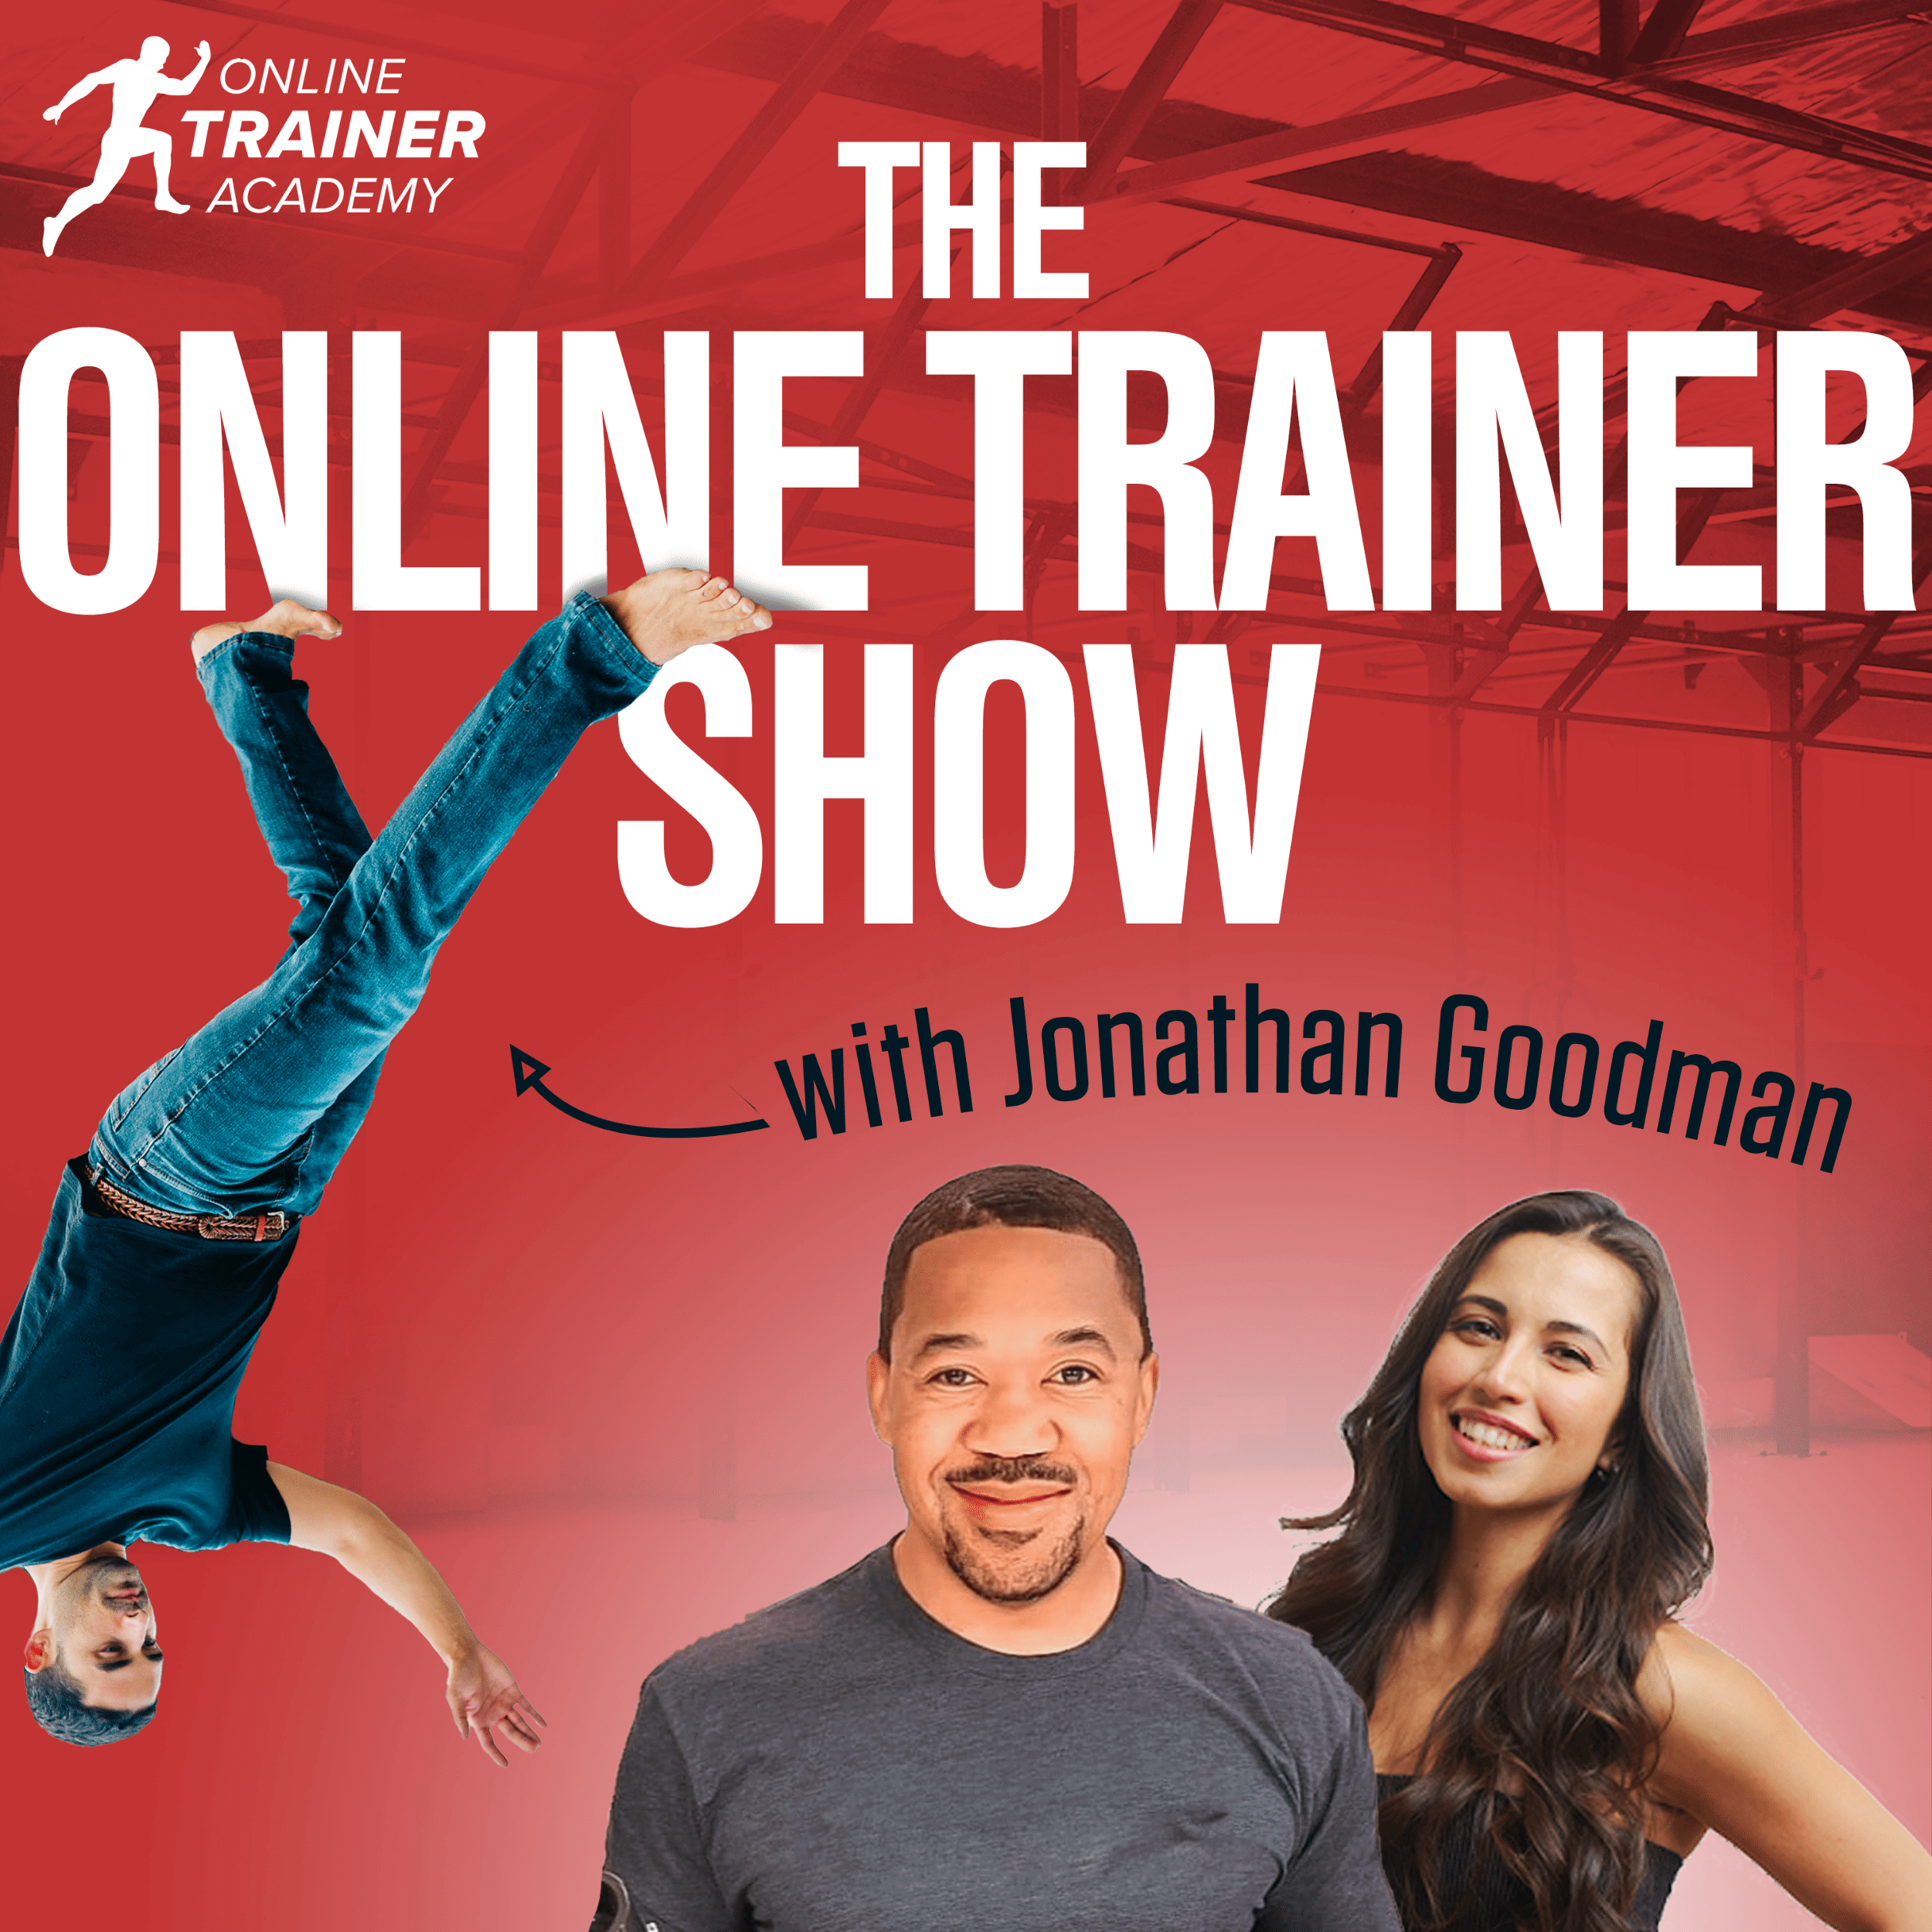 The Online Trainer Show show art